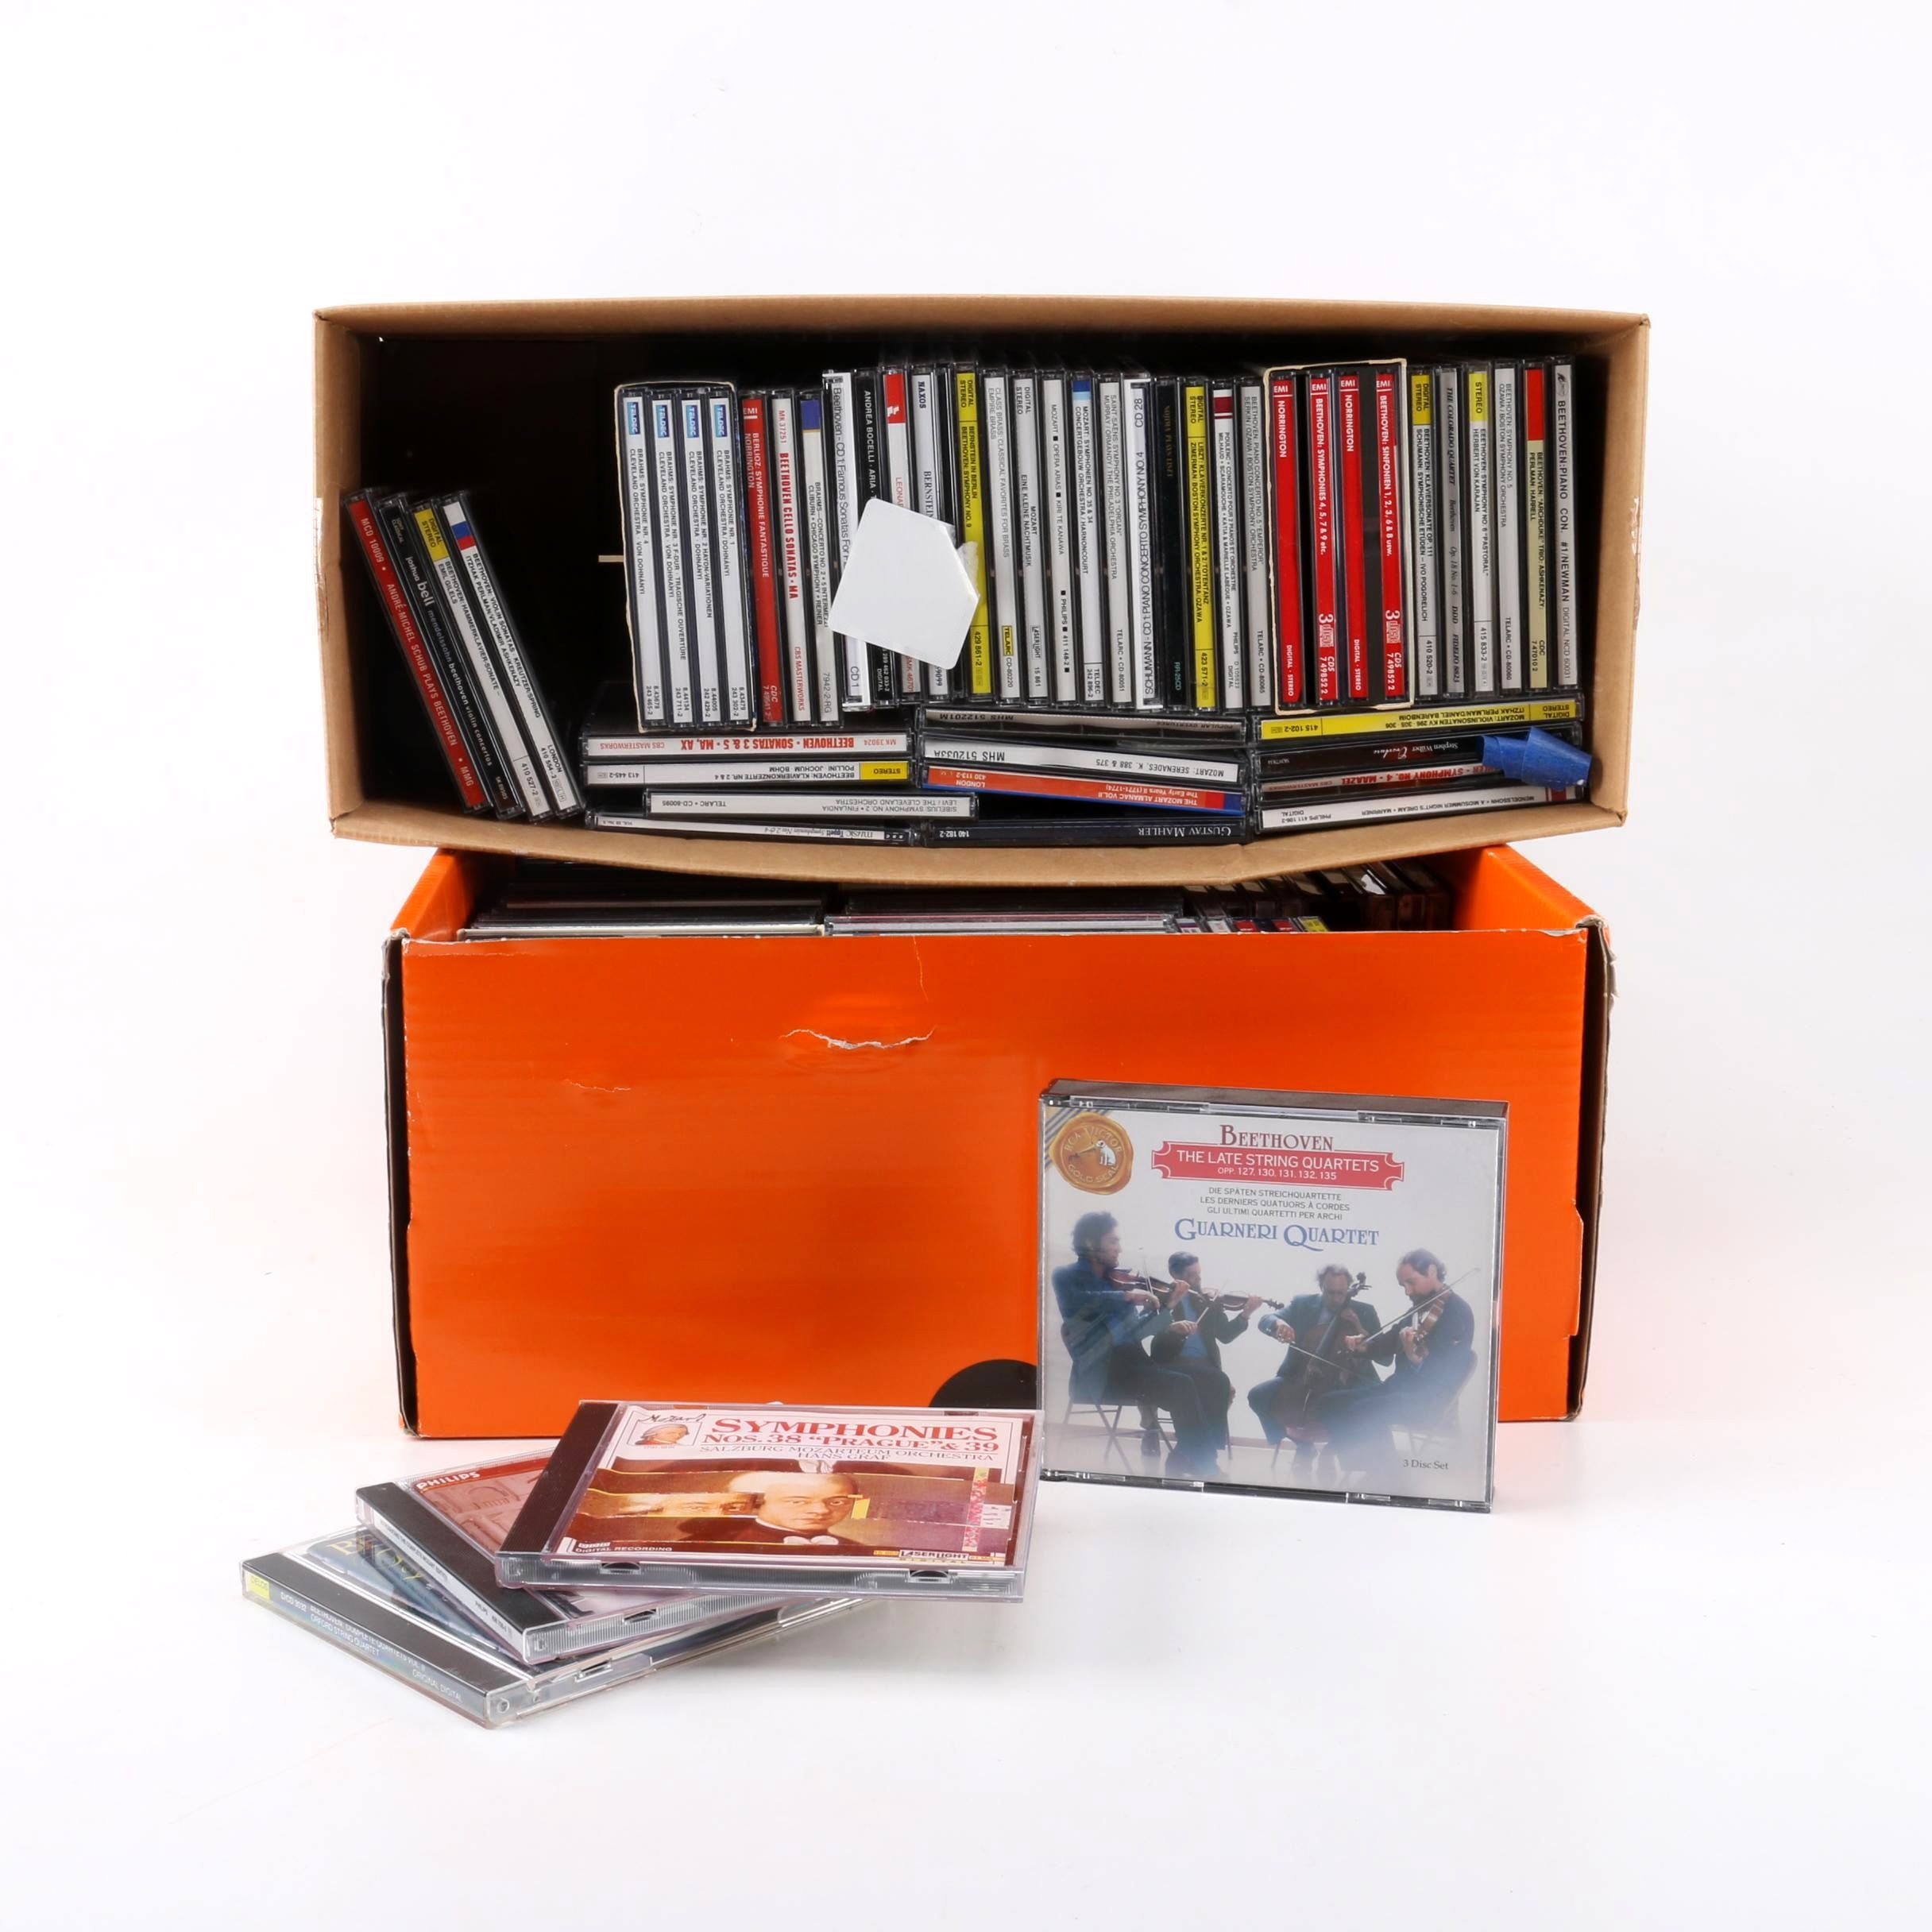 Beethoven, Brahms, Mozart, and Other CDs